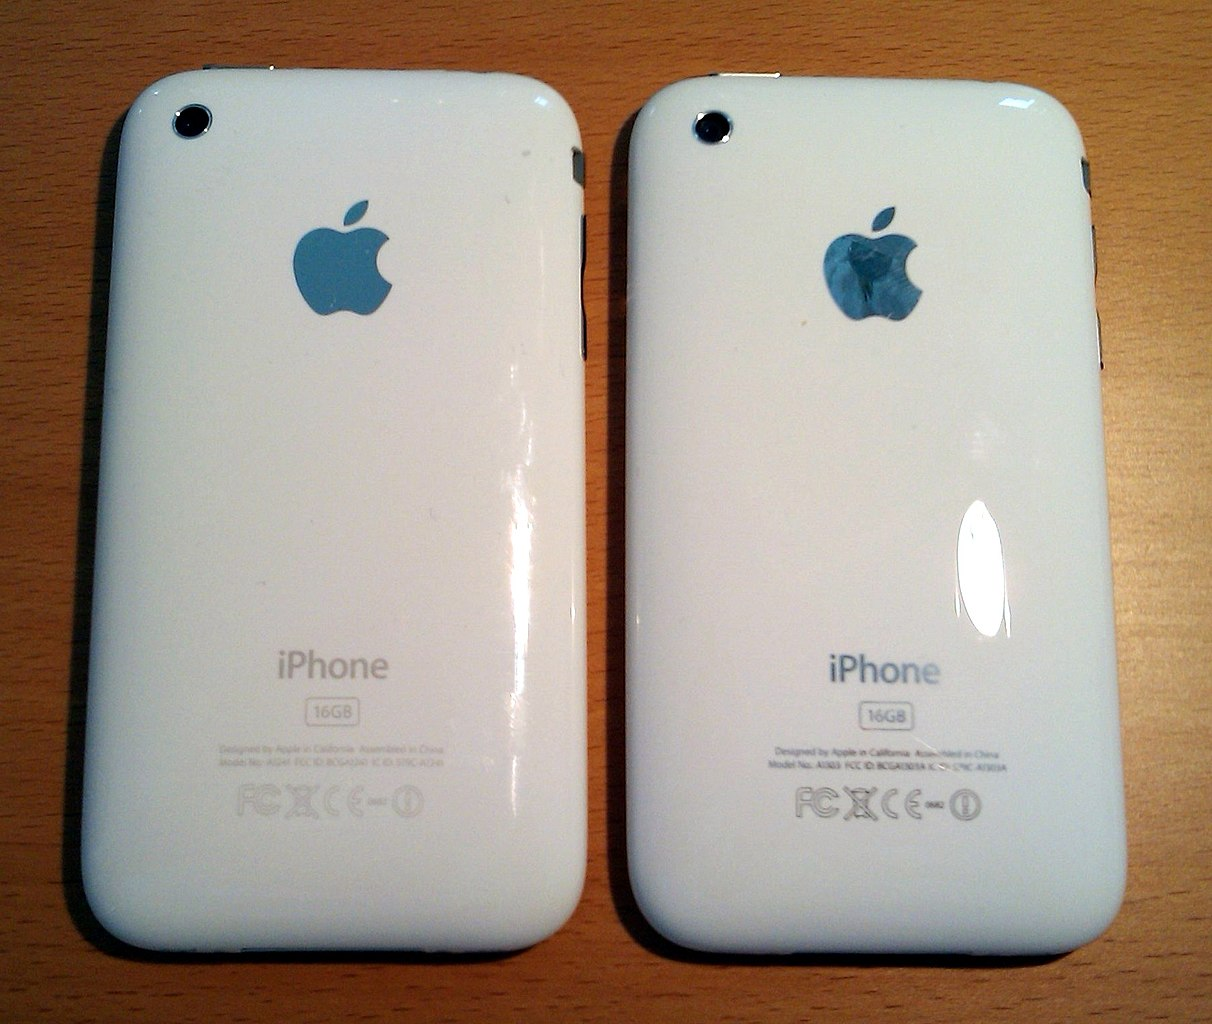 Iphone G Gb